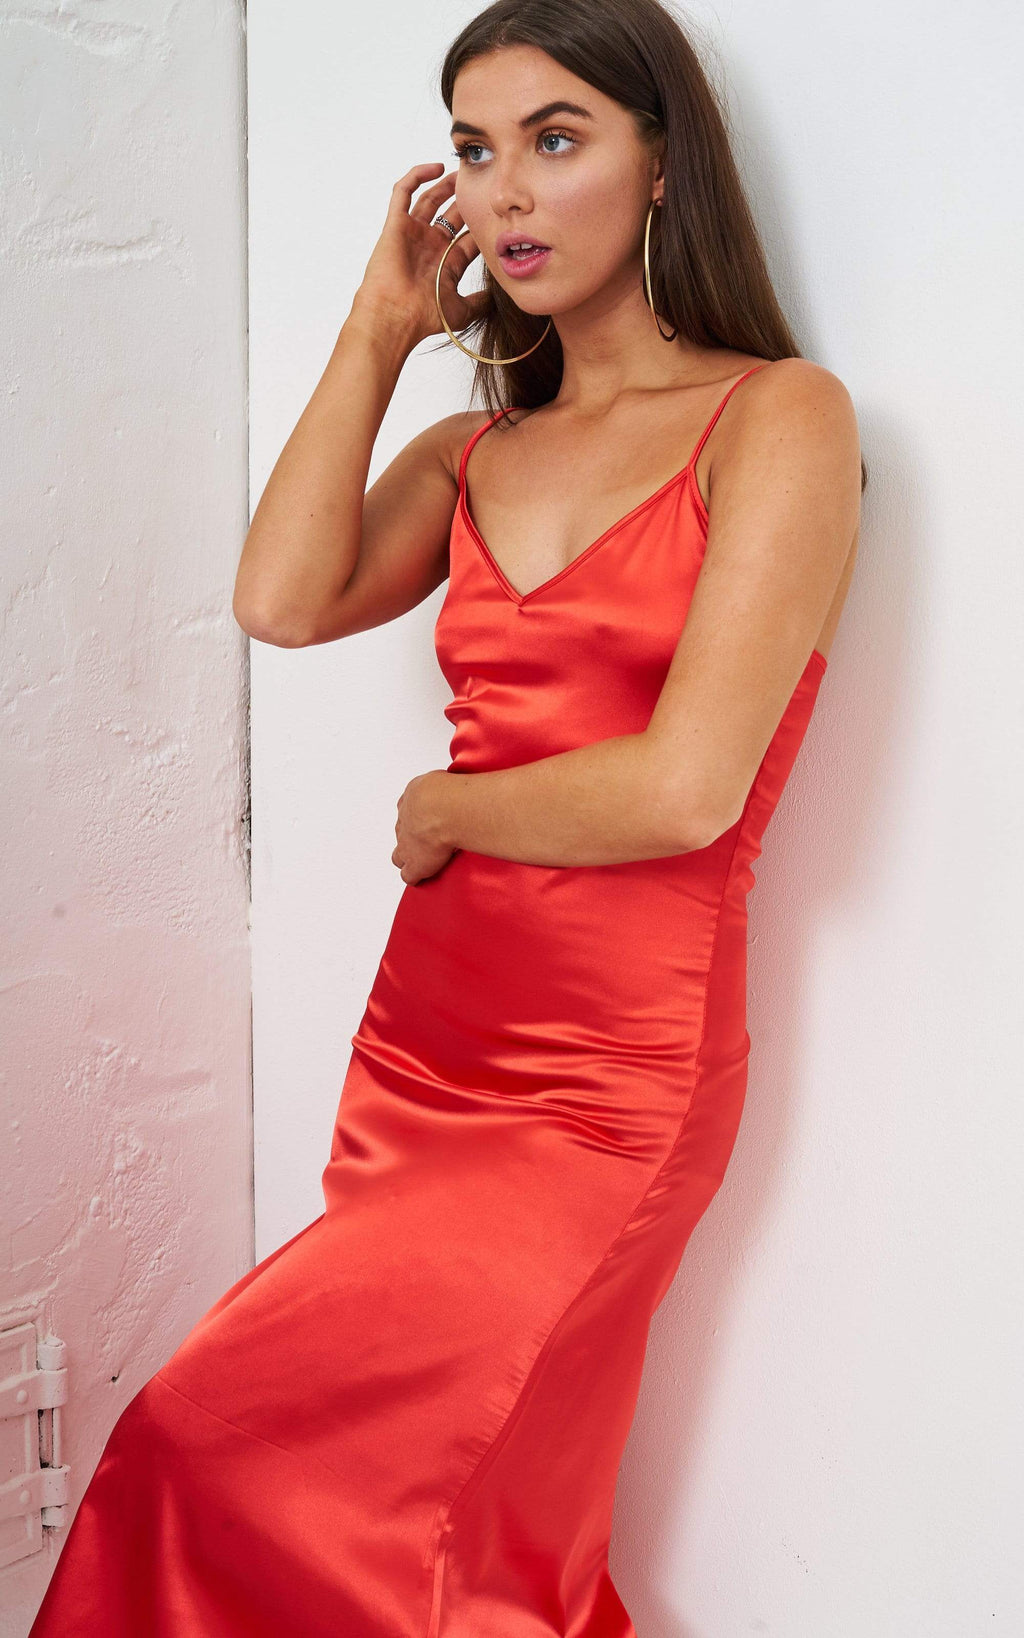 Vanyia Orange Satin Slip Midi Dress - love frontrow